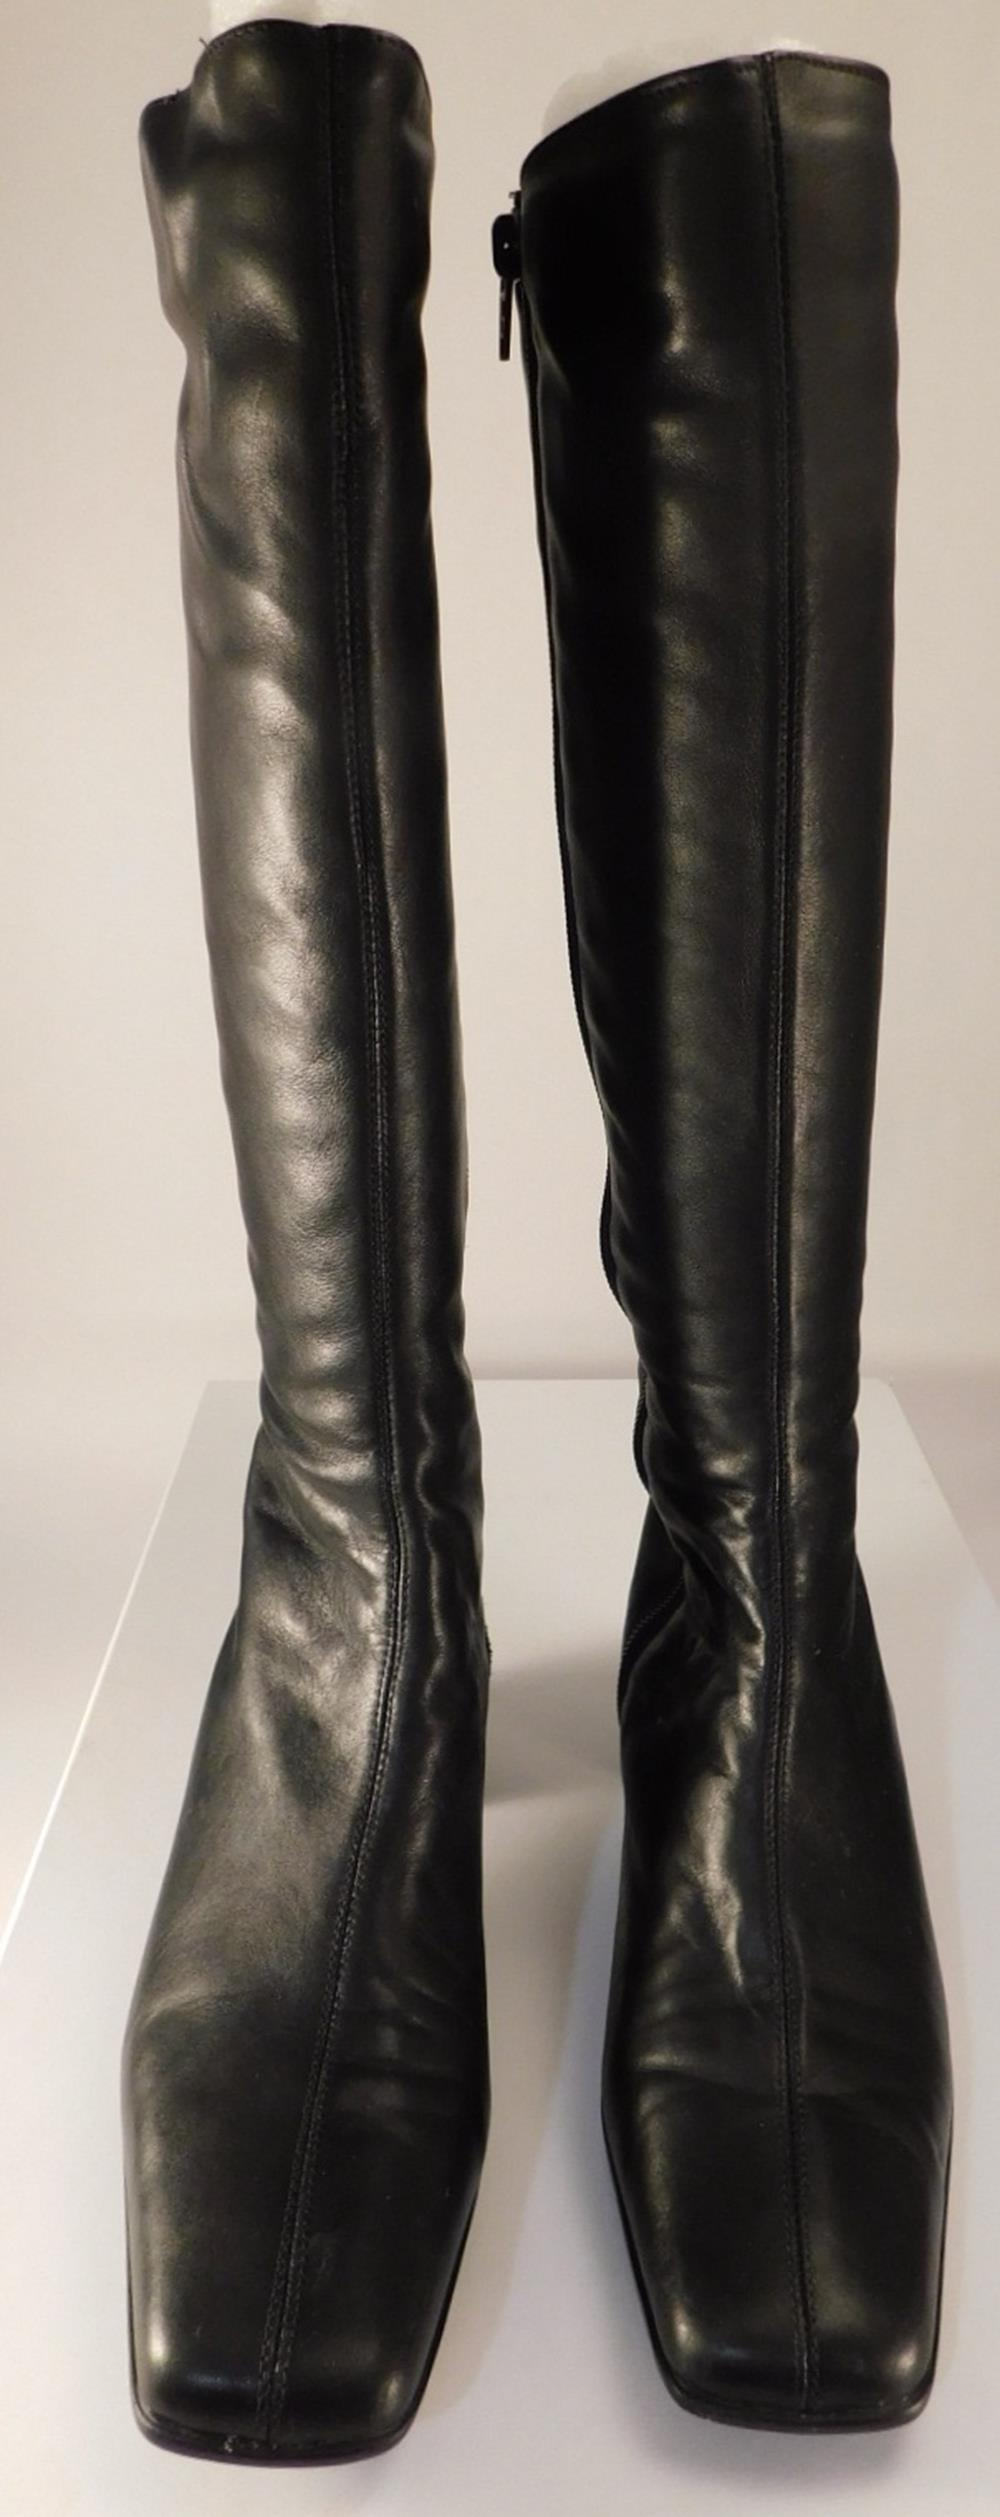 SESTO MEUCCI OF FLORENCE MADE IN ITALY SHOES SAFARA BLACK NAPPA SIZE 7 1/2 N LADIES BOOTS